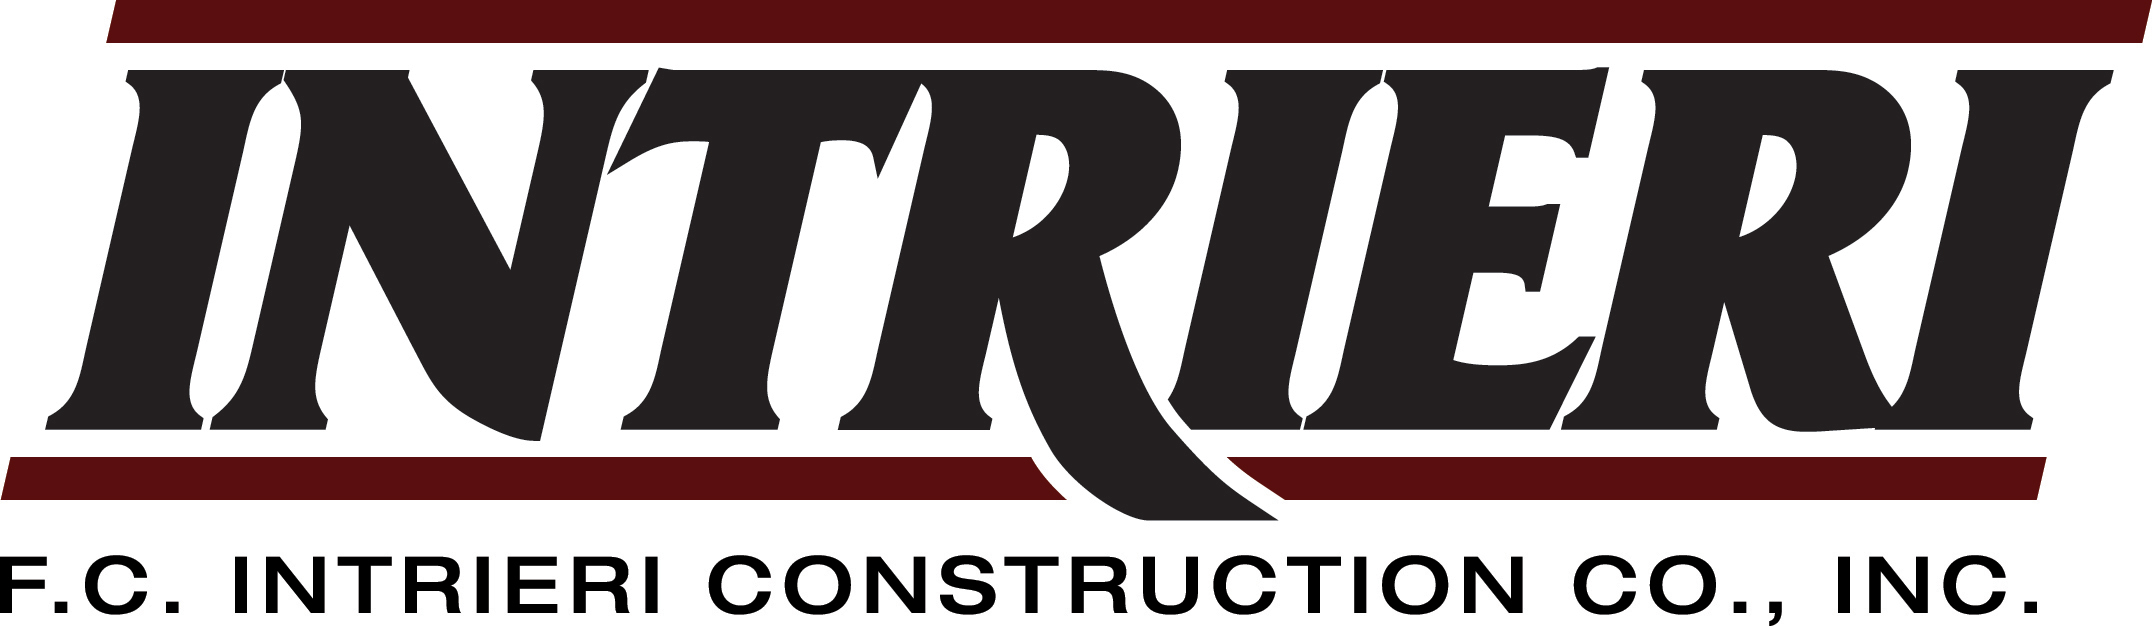 F.C. Intrieri Construction Co., Inc.